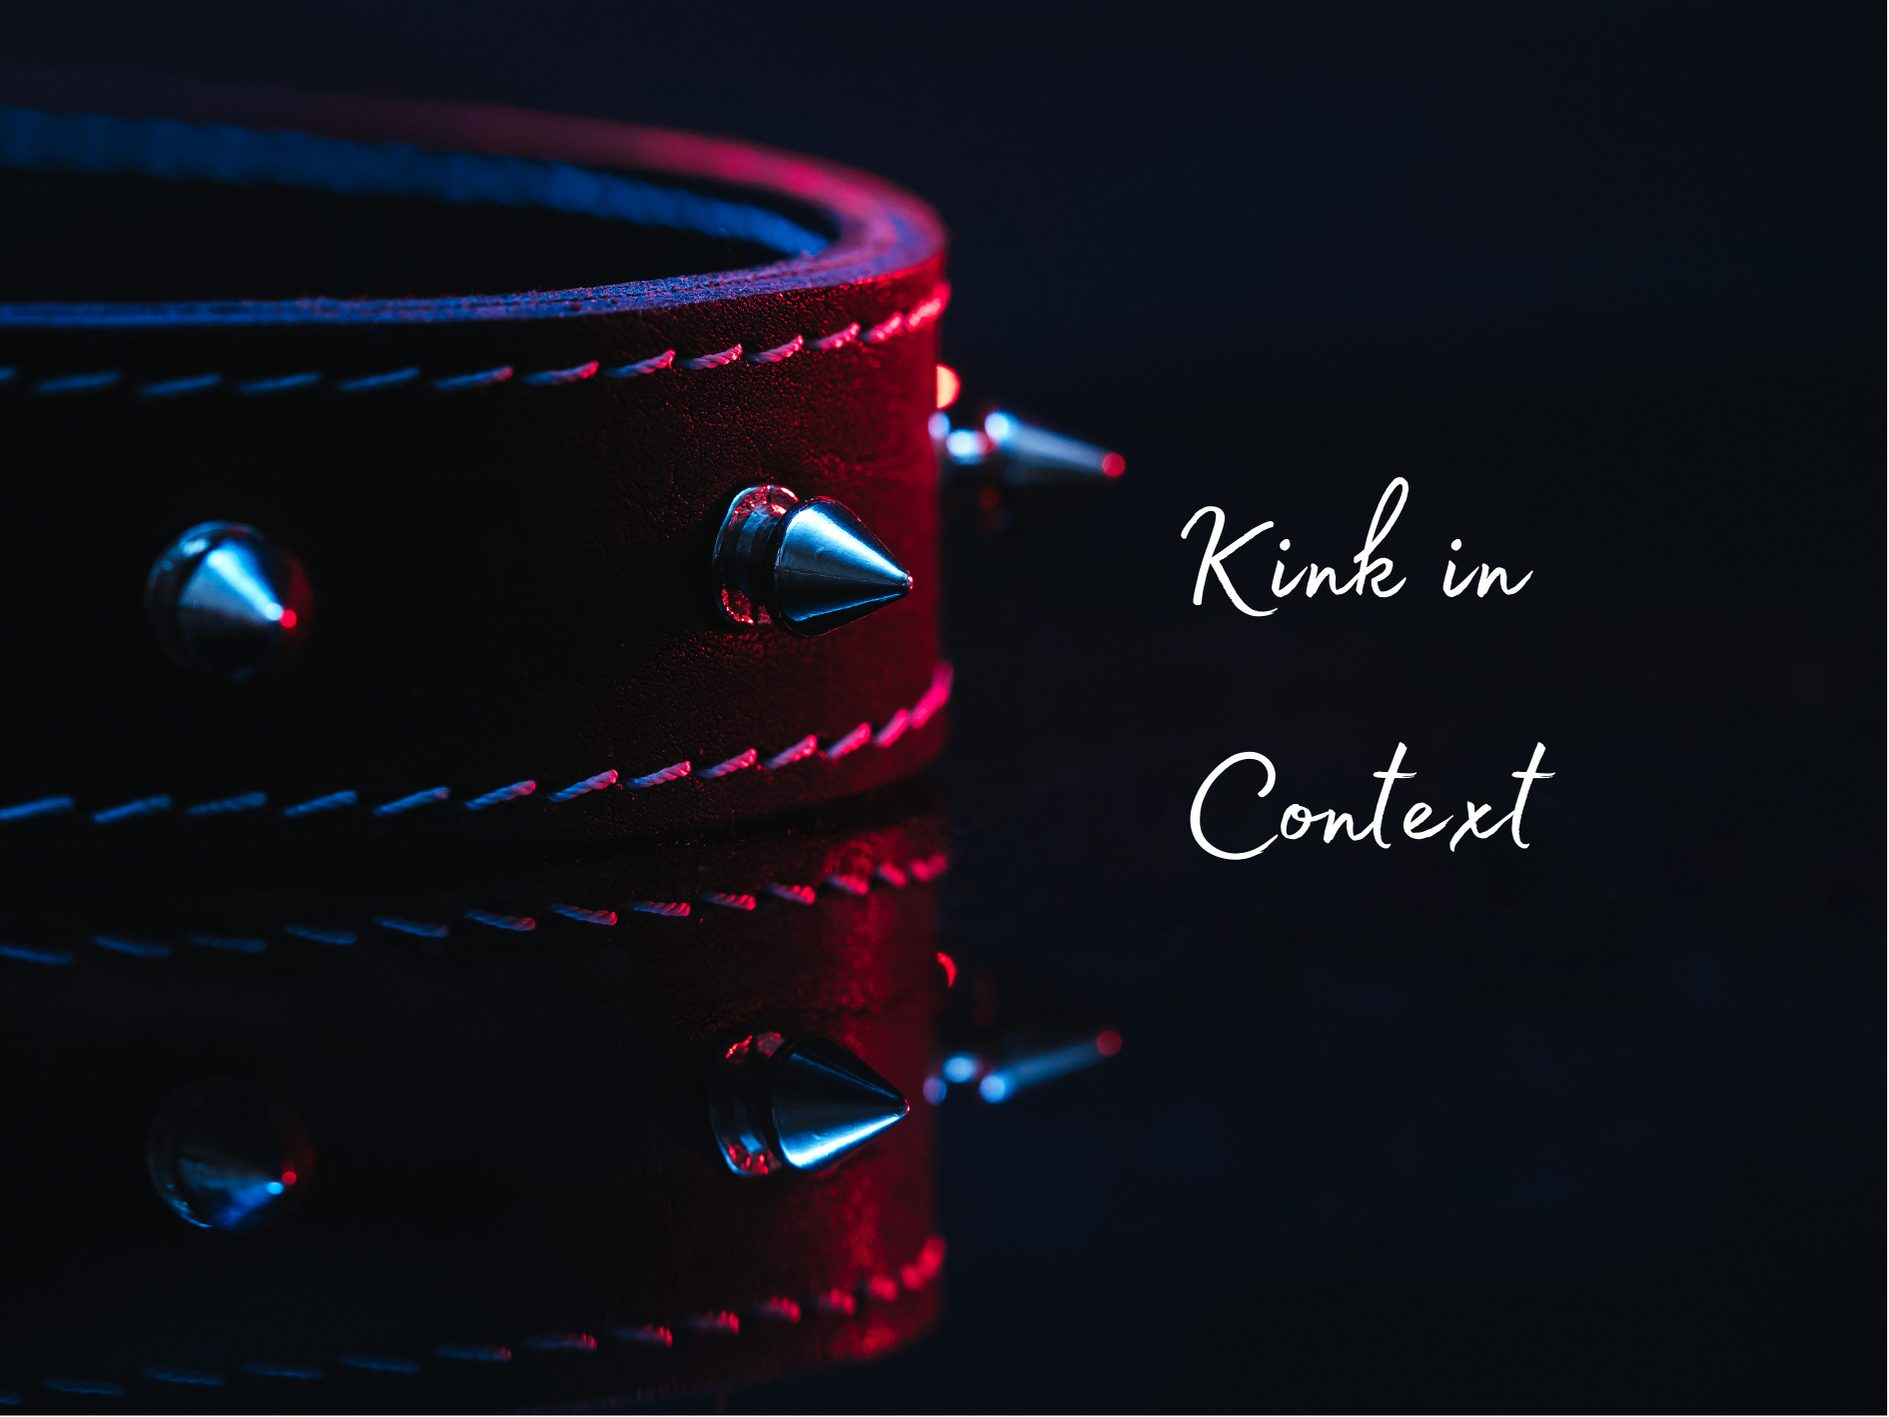 [Guest Post] Kink in Context by Quenby